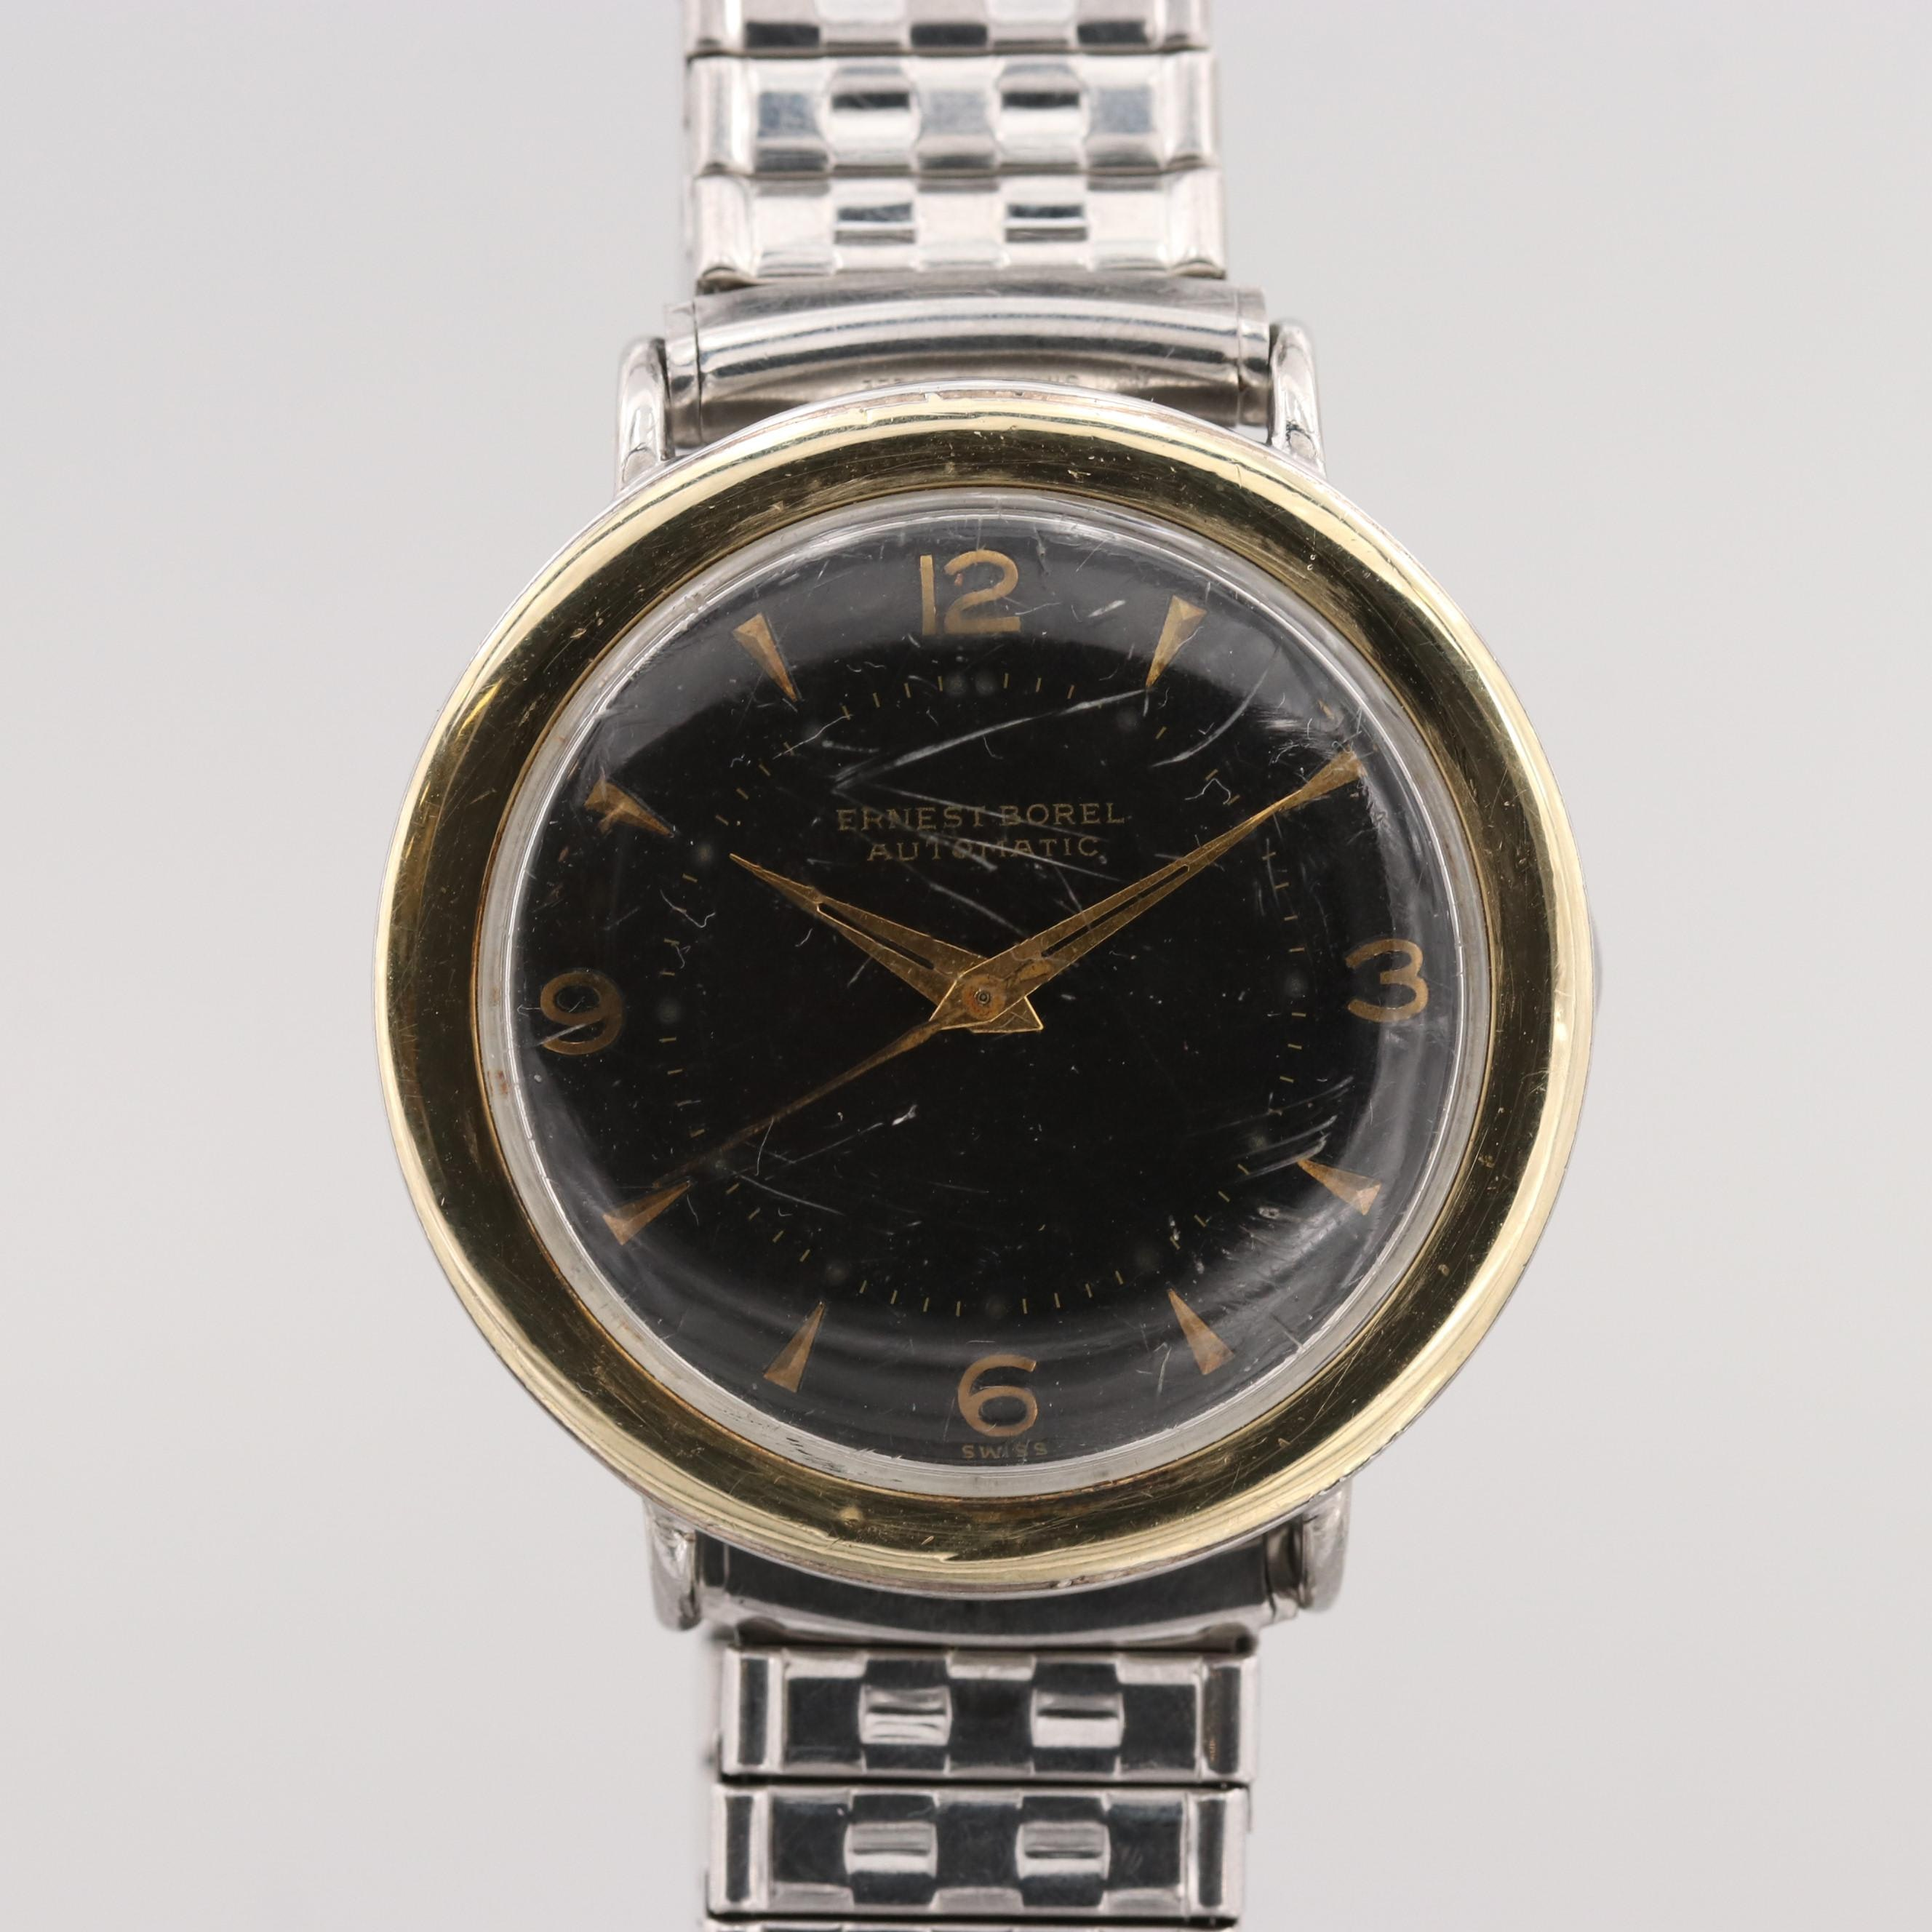 Vintage Ernest Borel Two Tone Automatic Wristwatch